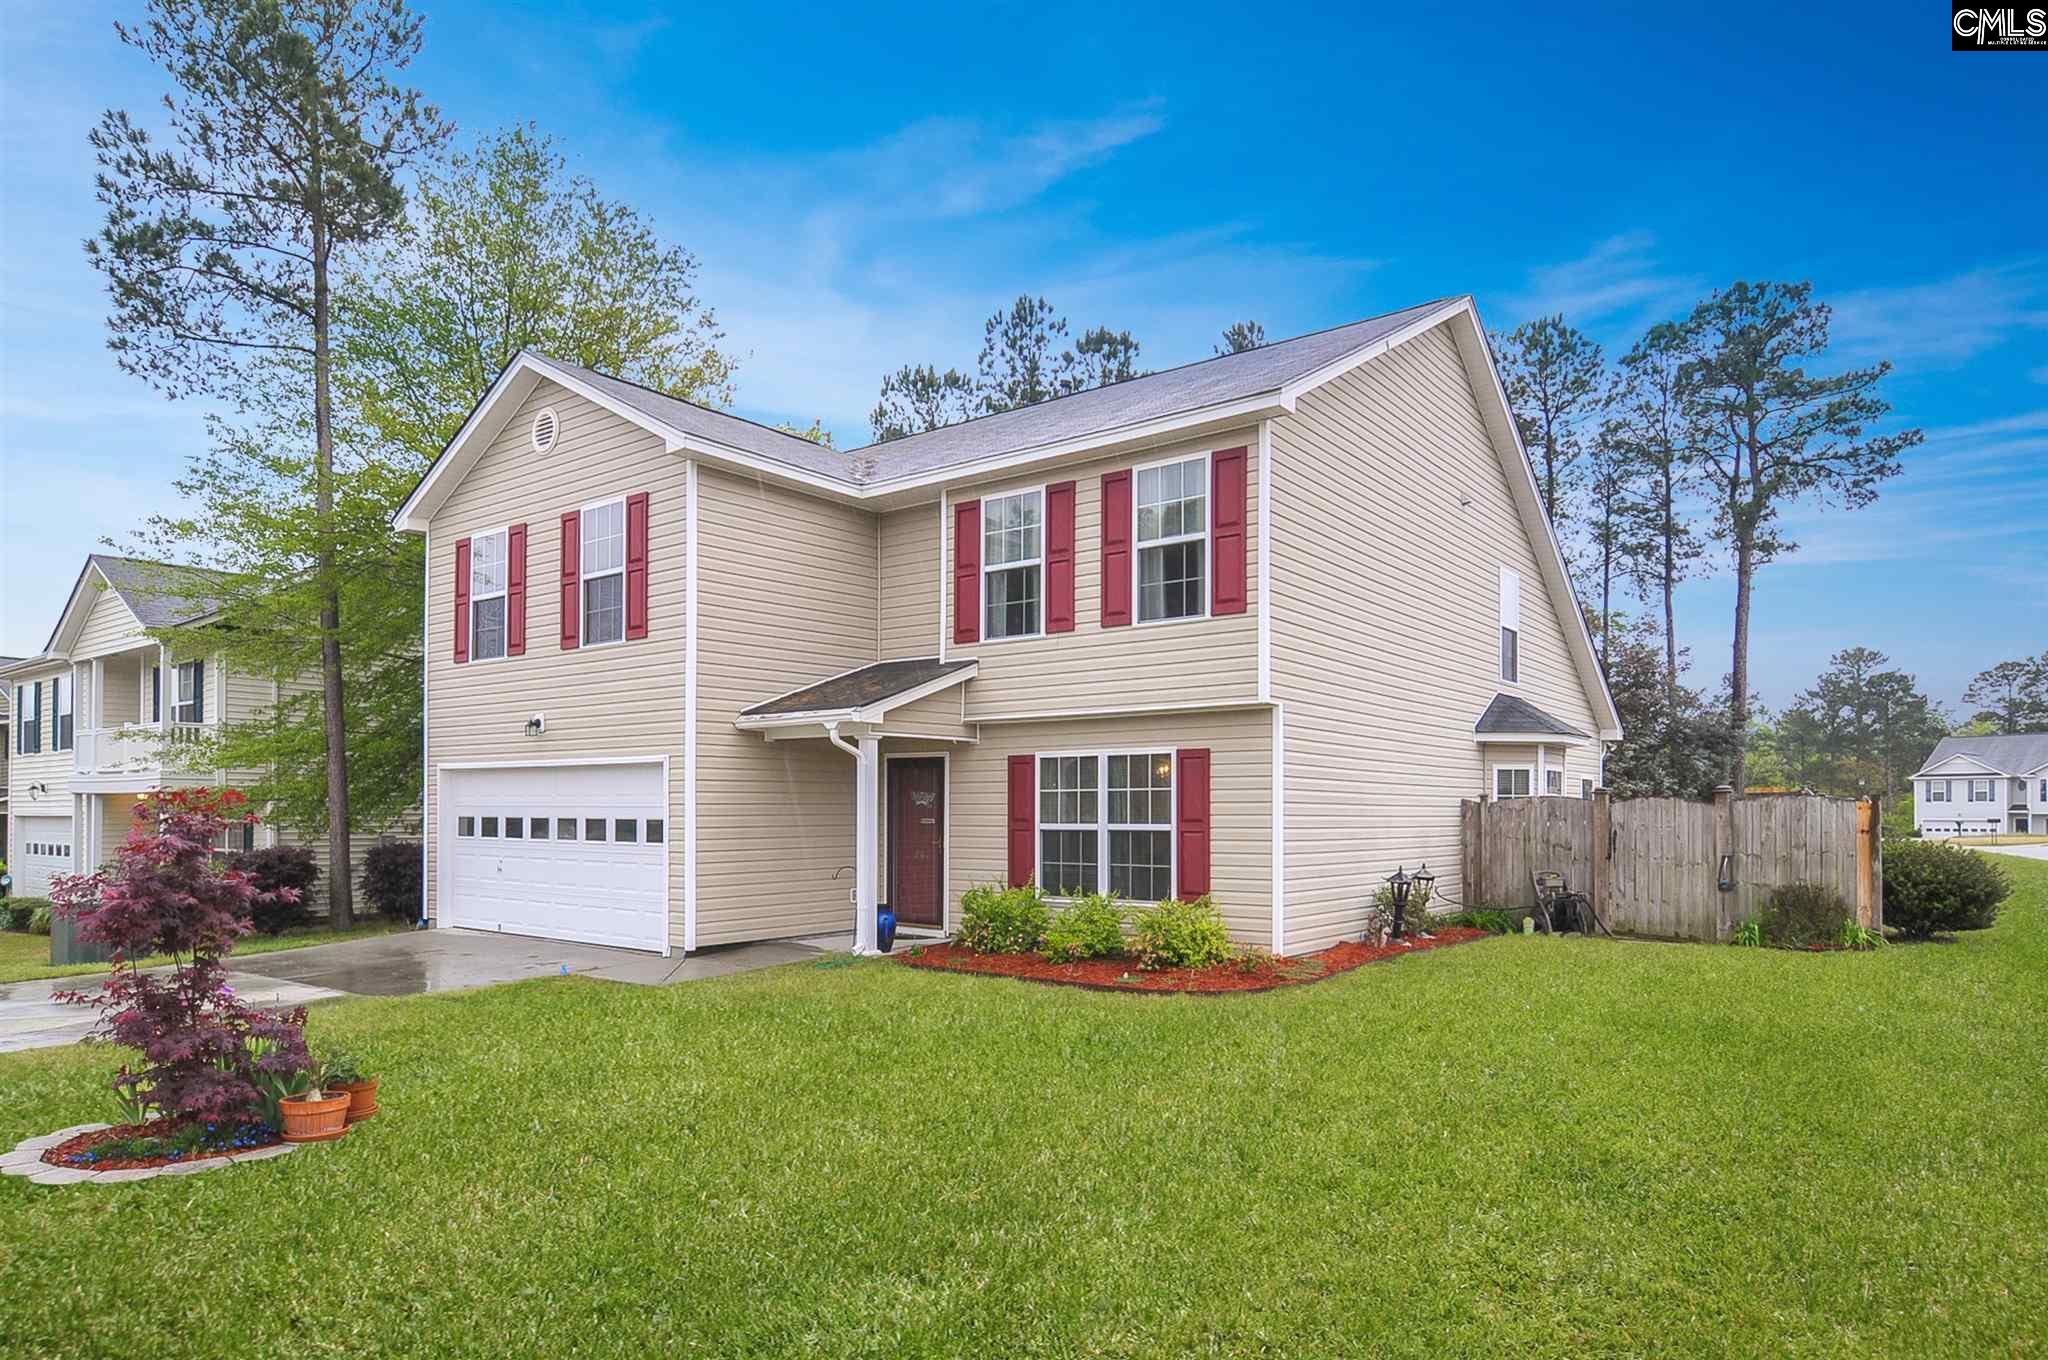 202 N High Duck Blythewood, SC 29016-7129